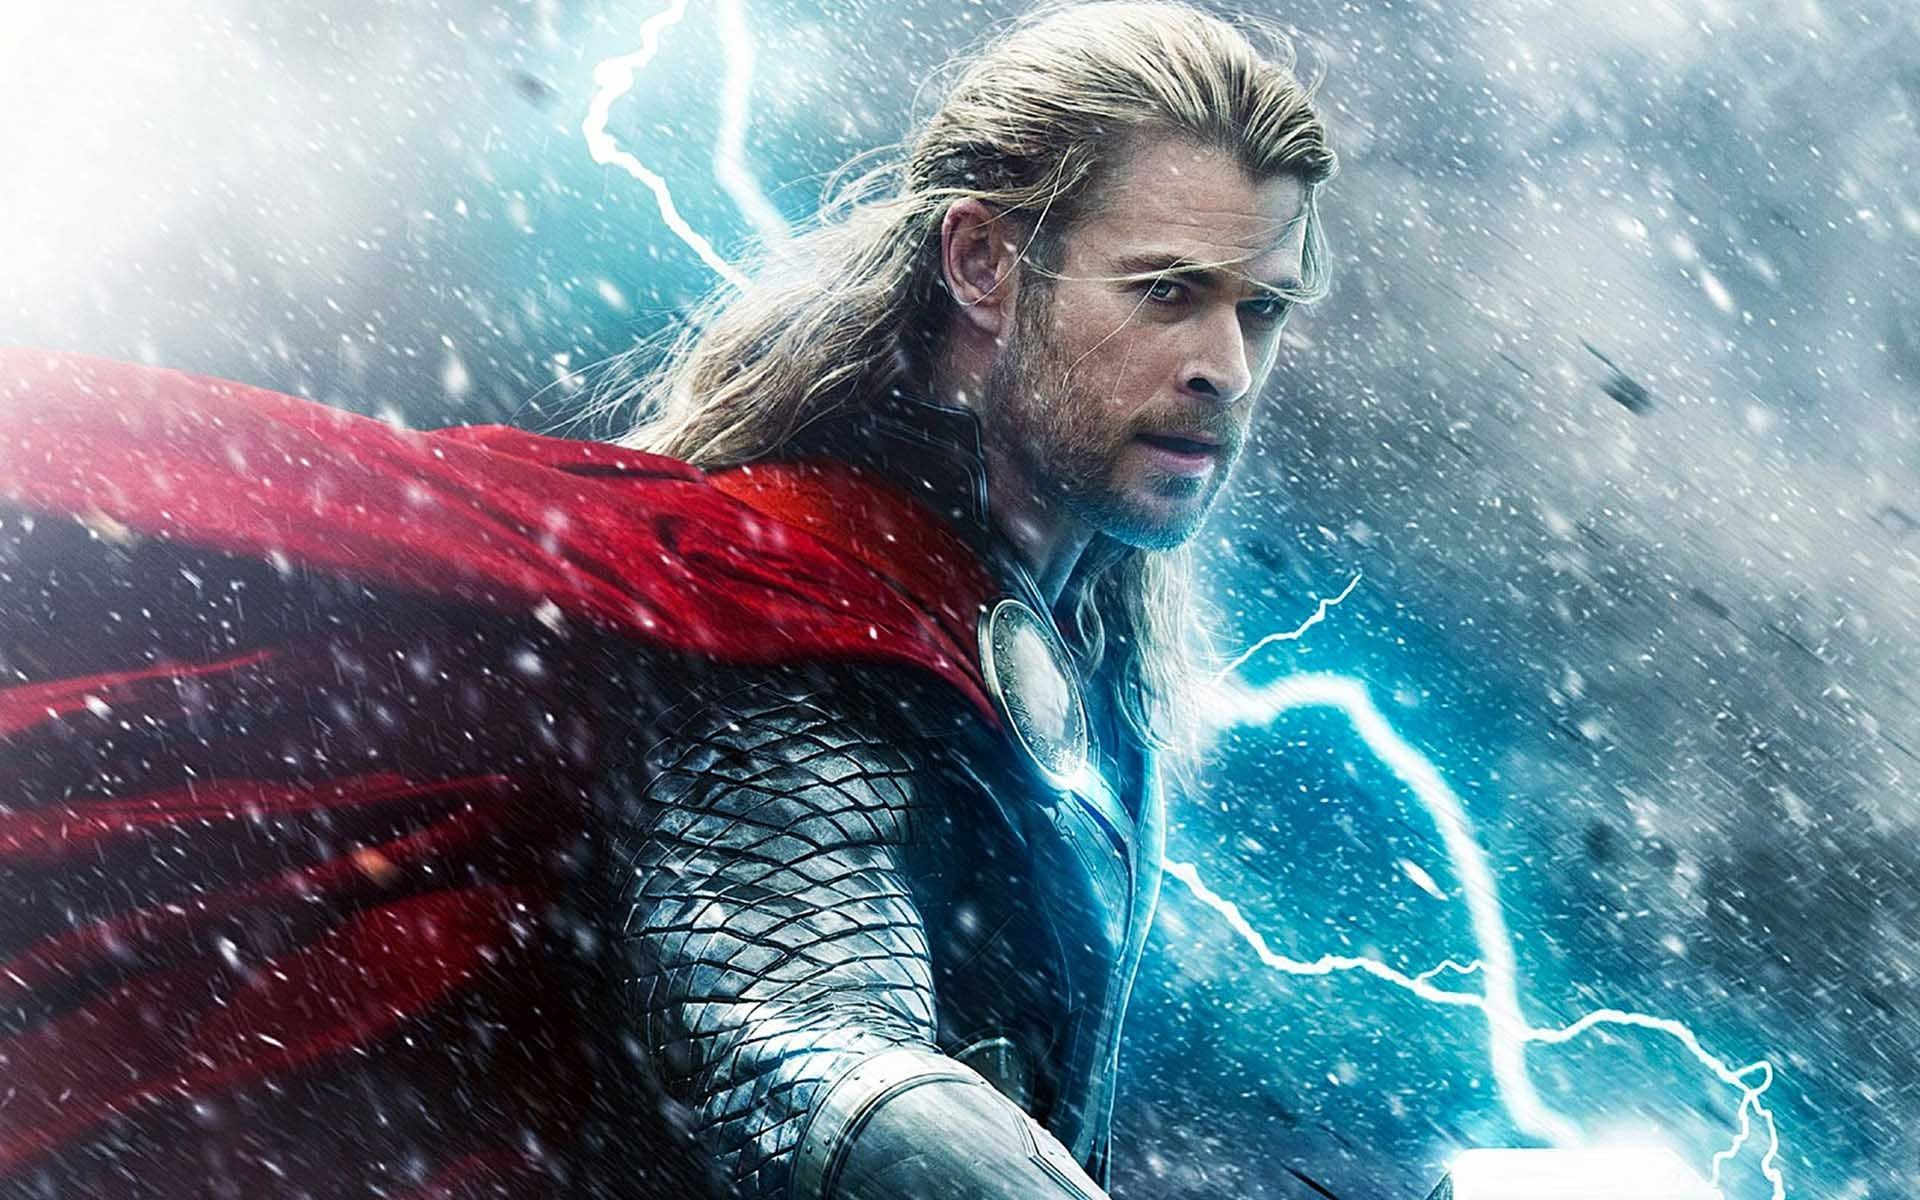 Res: 1920x1200, Scene From - Thor The Dark World | HD Hollywood Movies Wallpaper Free  Download ...